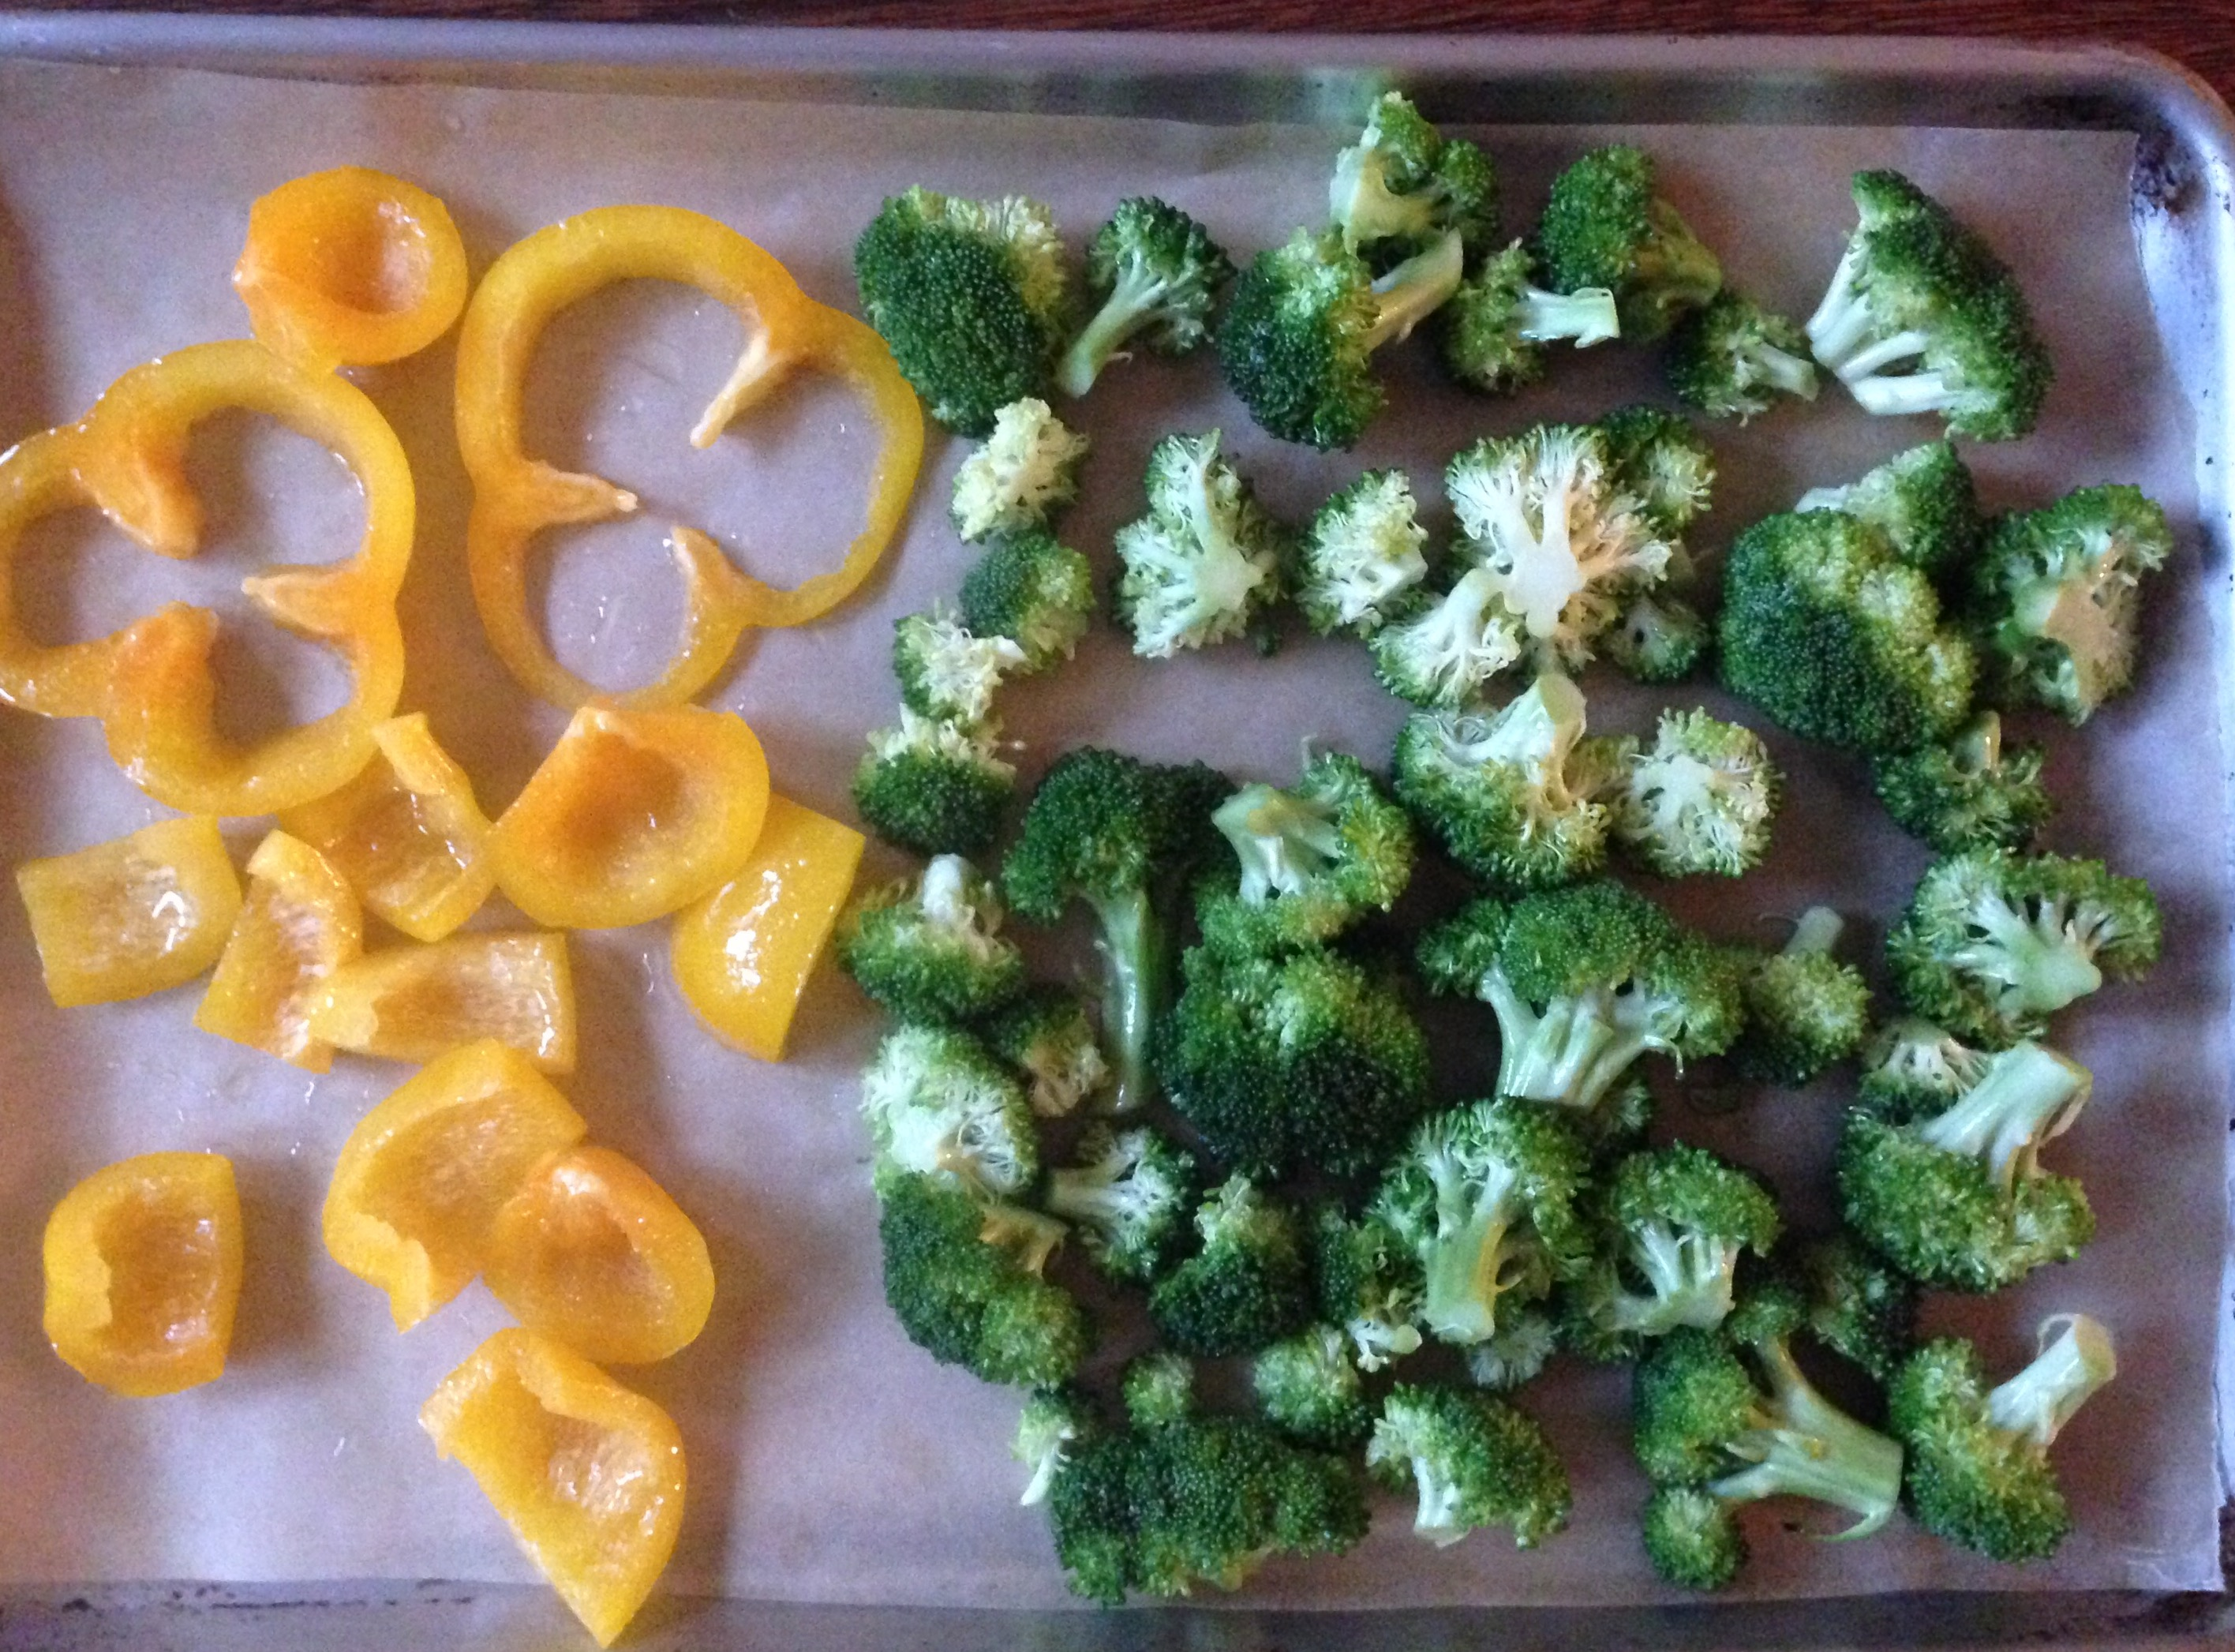 Broccoli and Bell Peppers Ready to Roast